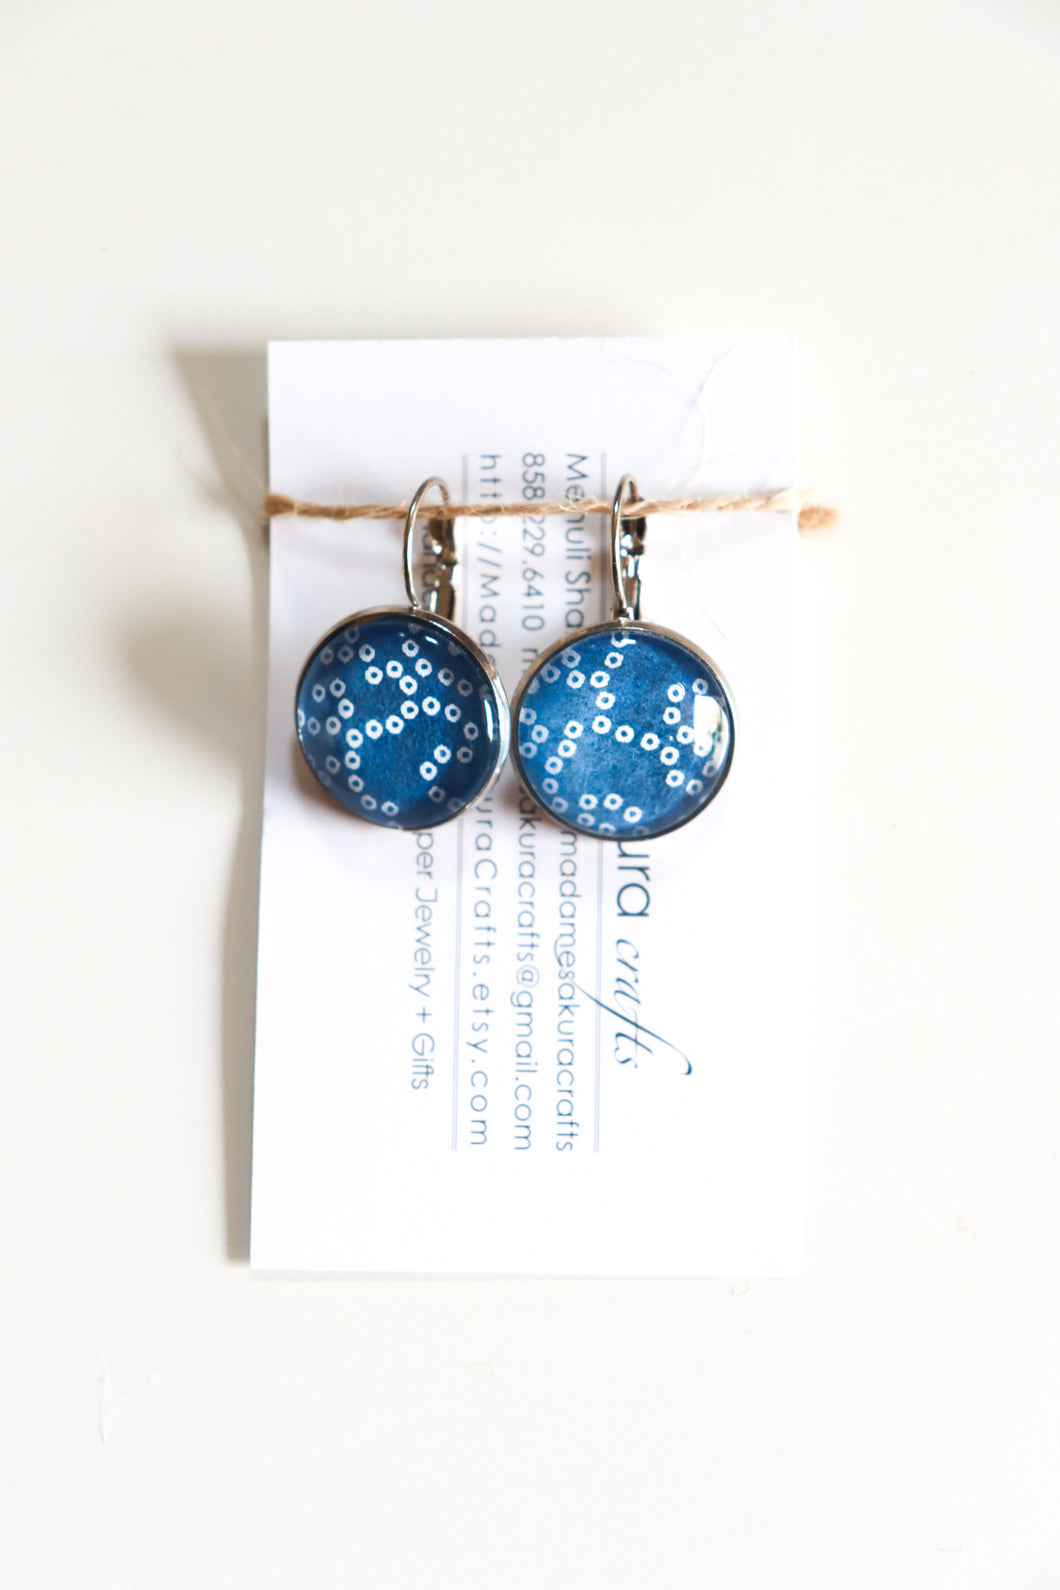 Shibori - Washi Paper Earrings